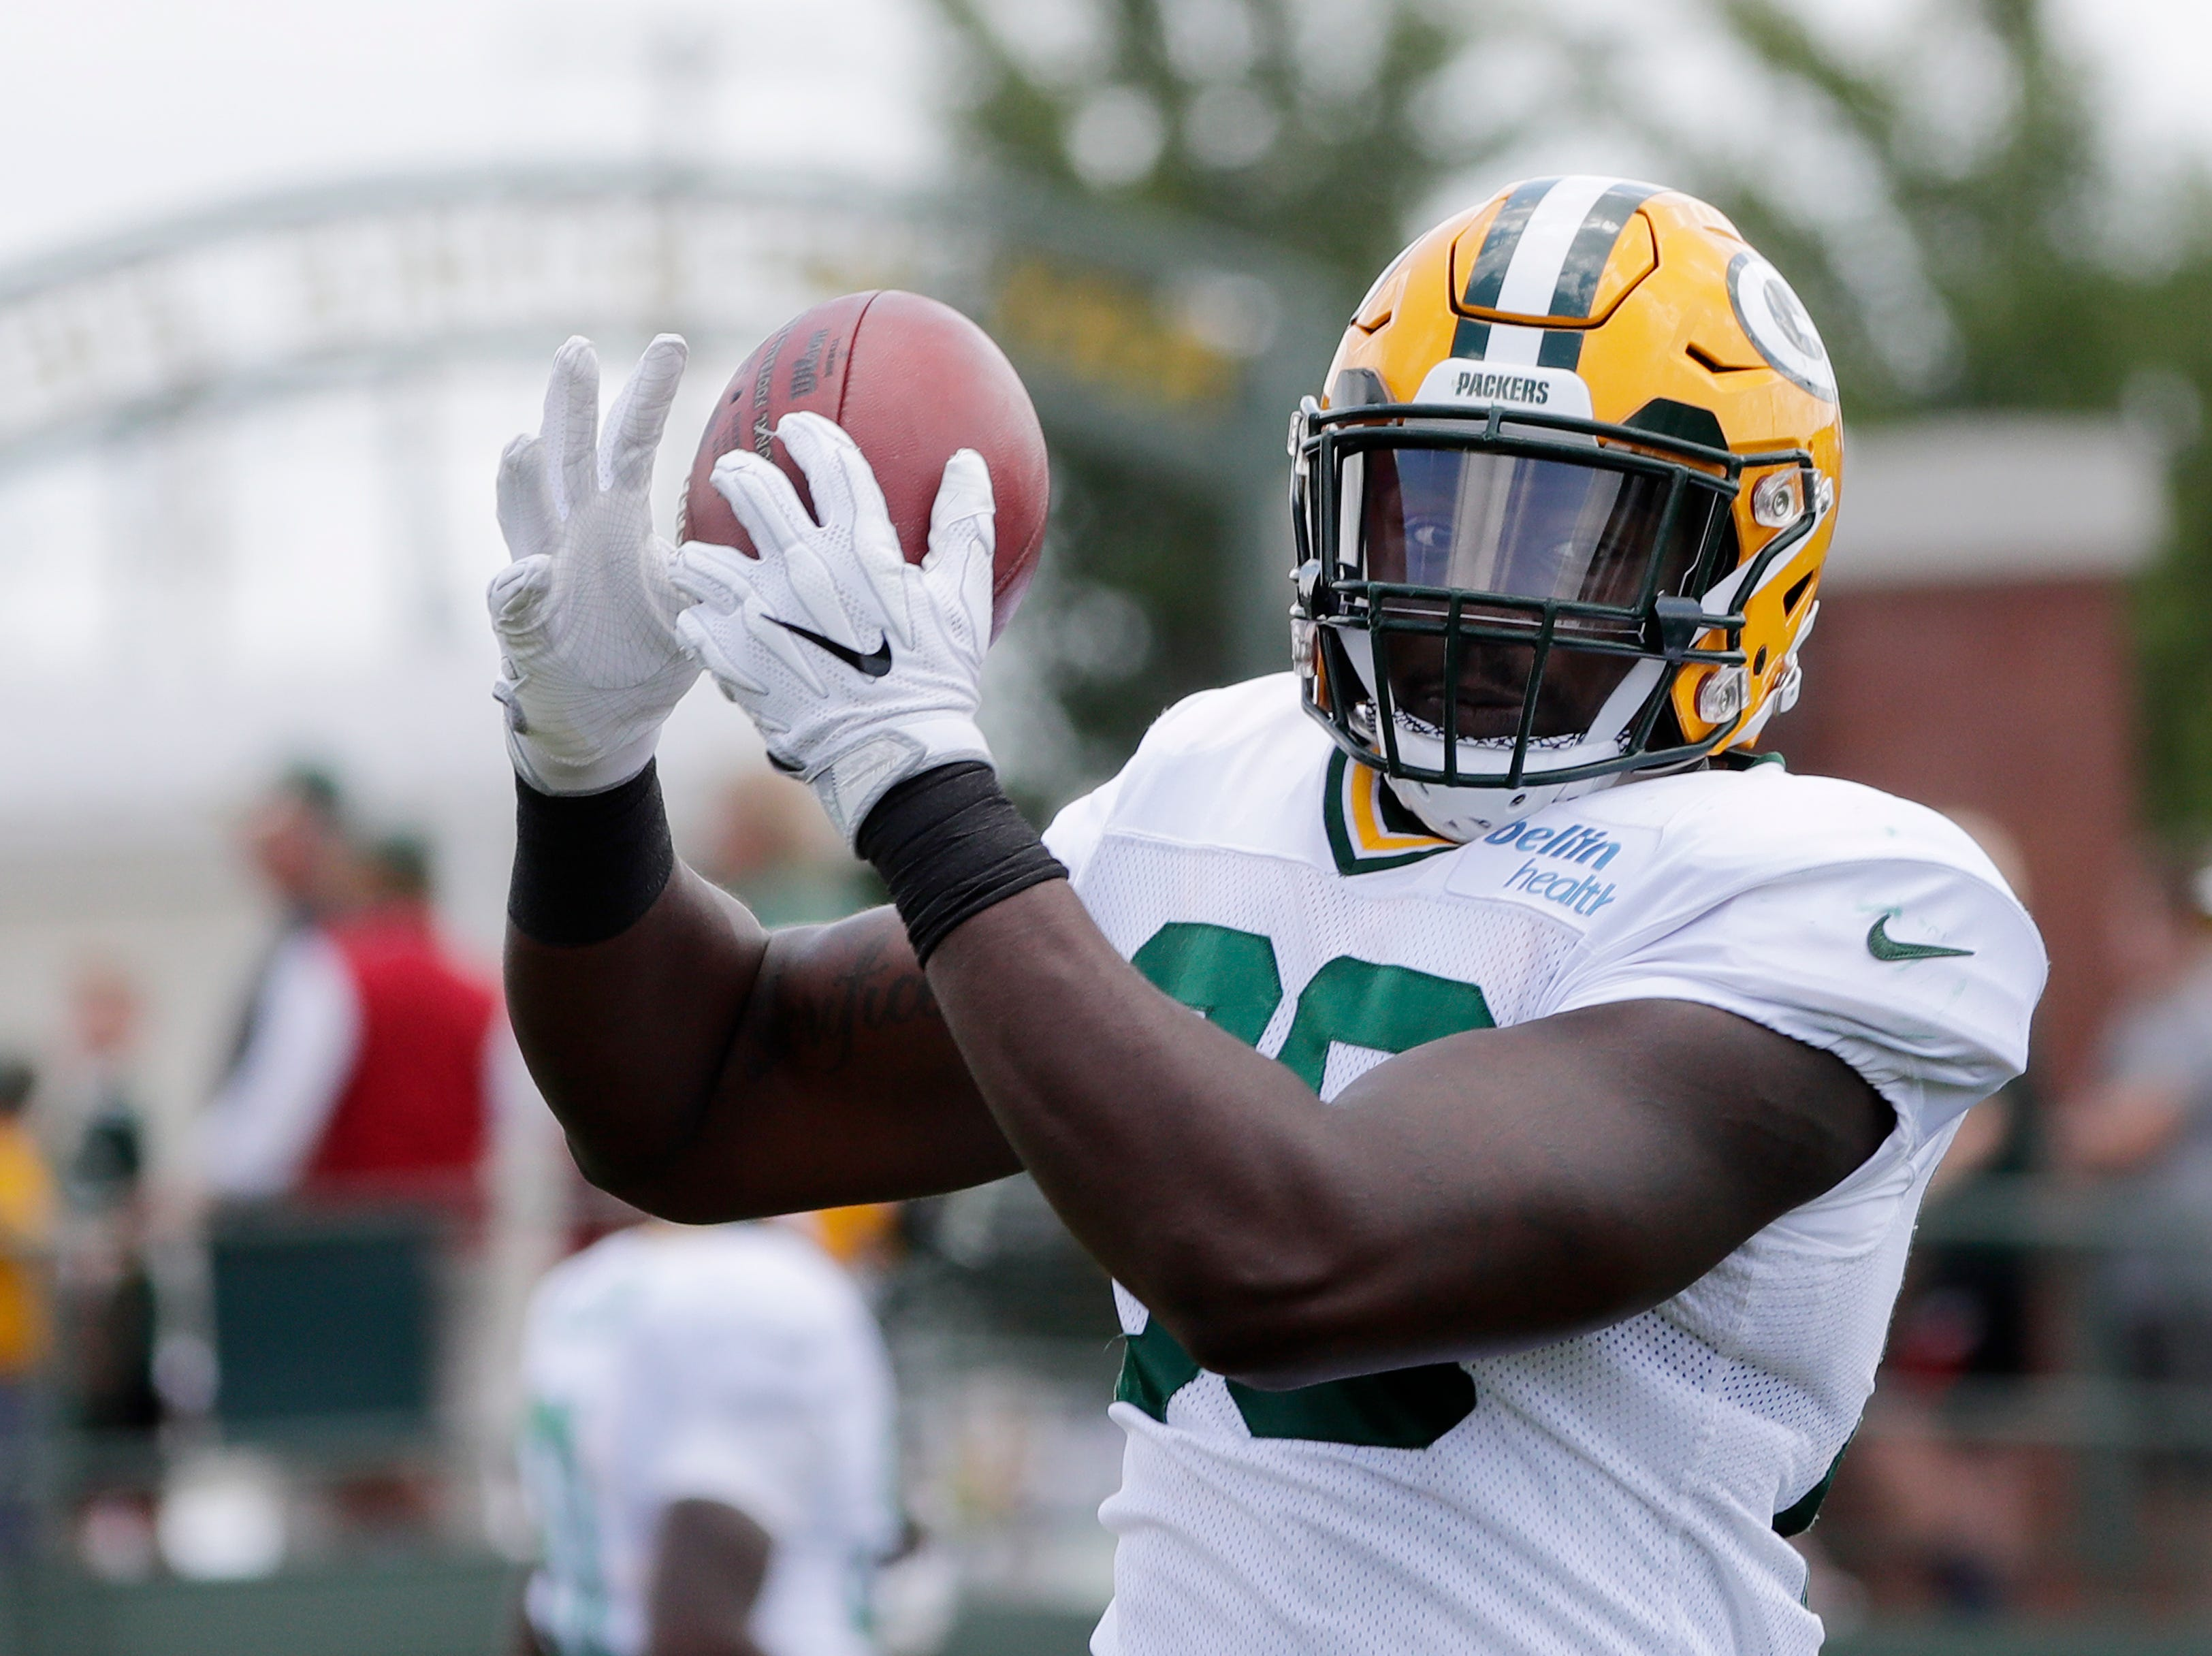 Green Bay Packers tight end Emanuel Byrd (86) catches a ball during training camp practice at Ray Nitschke Field on Friday, August 3, 2018 in Ashwaubenon, Wis. 